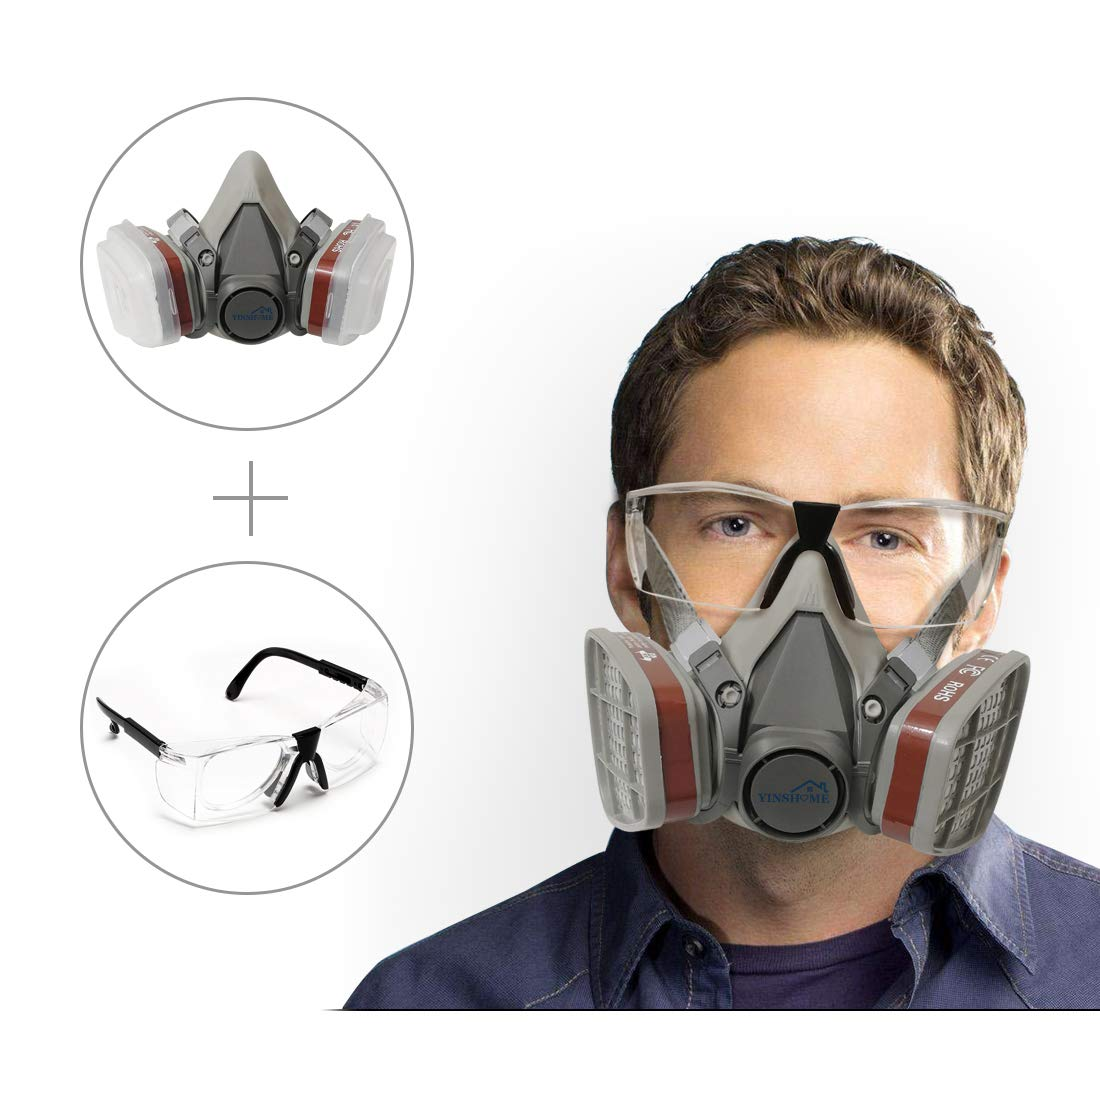 Yinshome Respirator Mask(Plus Safety Glasses)-Gas Mask with Dual Filter Cartridges for Breathing Eye Protection Against Dust,Organic Vapors, Chemicals-Paint Respirator for DIY projects by YinsHome